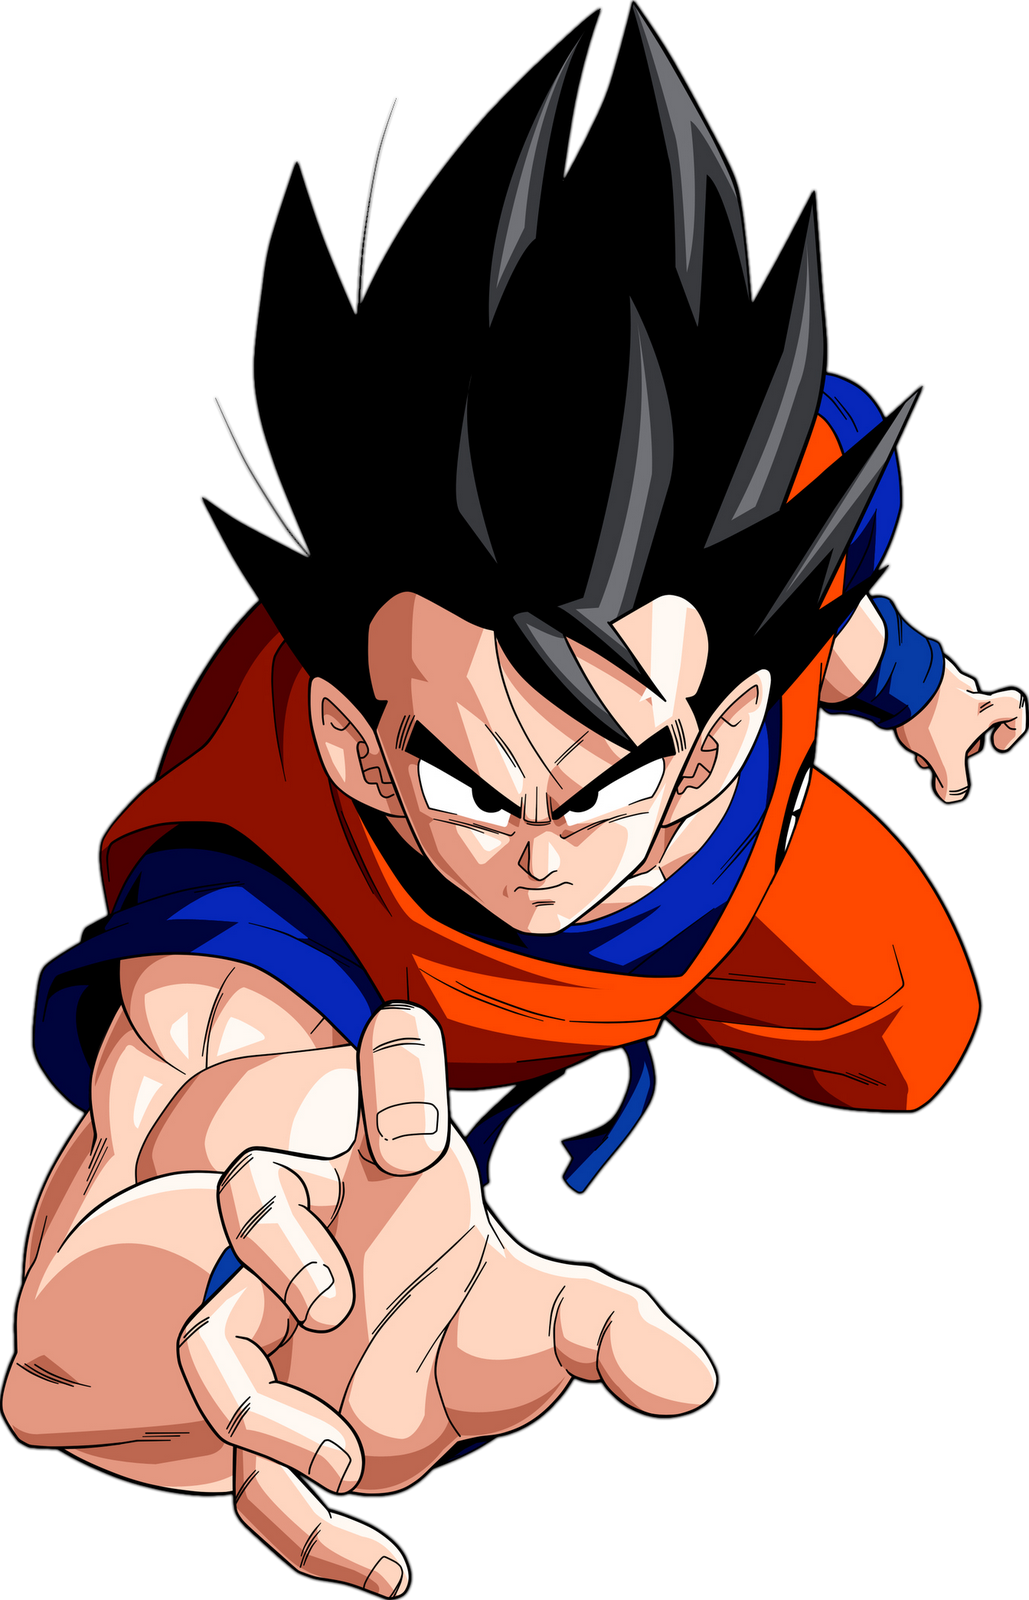 Render Dragon Ball Z Goku Wallpaper Hd Wallpaper